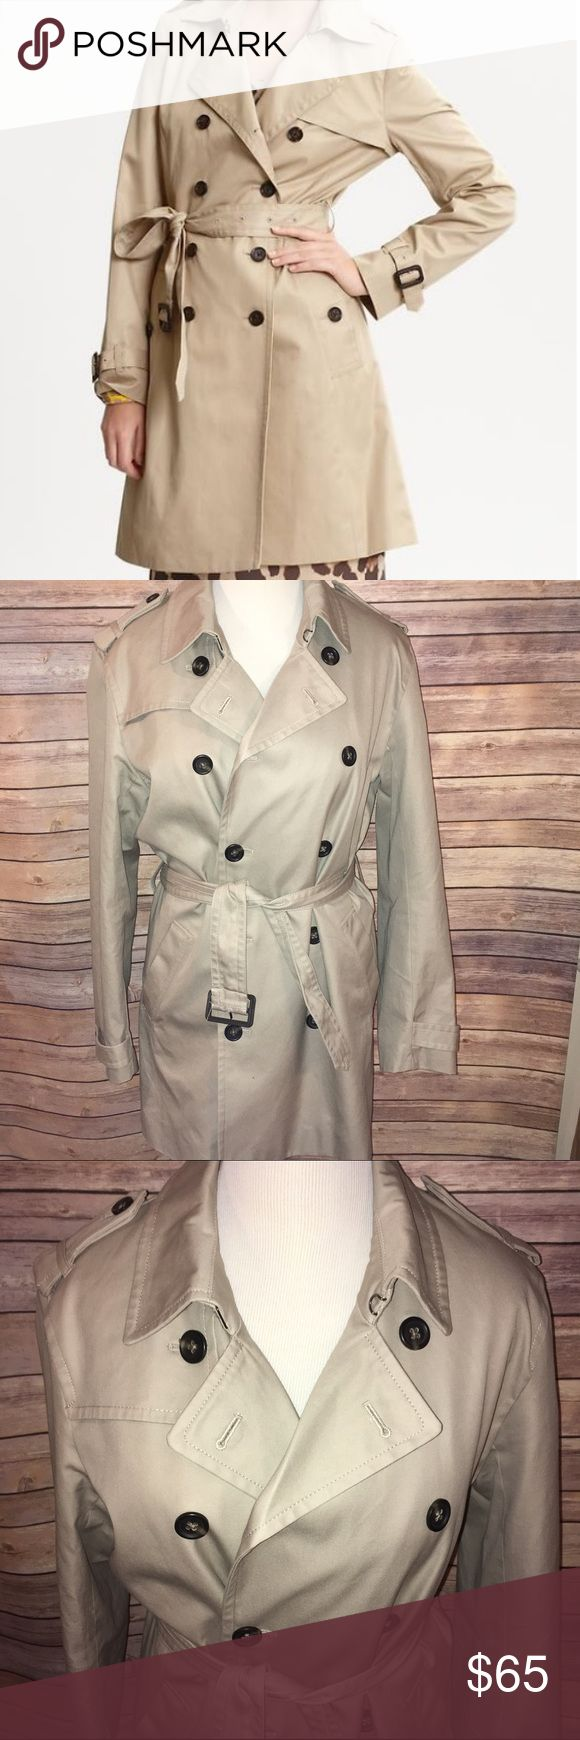 Banana Republic Khaki Classic Trench Coat Simply classic, beautifully tailored neutral beige/khaki trench coat. Double breasted design with buckle accent belt and cuffs. Fully lined. Knee length. Retails for $198. Perfect condition, no flaws at all, only worn once or twice. Check out my other listings to bundle and save 25% 😎! Banana Republic Jackets & Coats Trench Coats